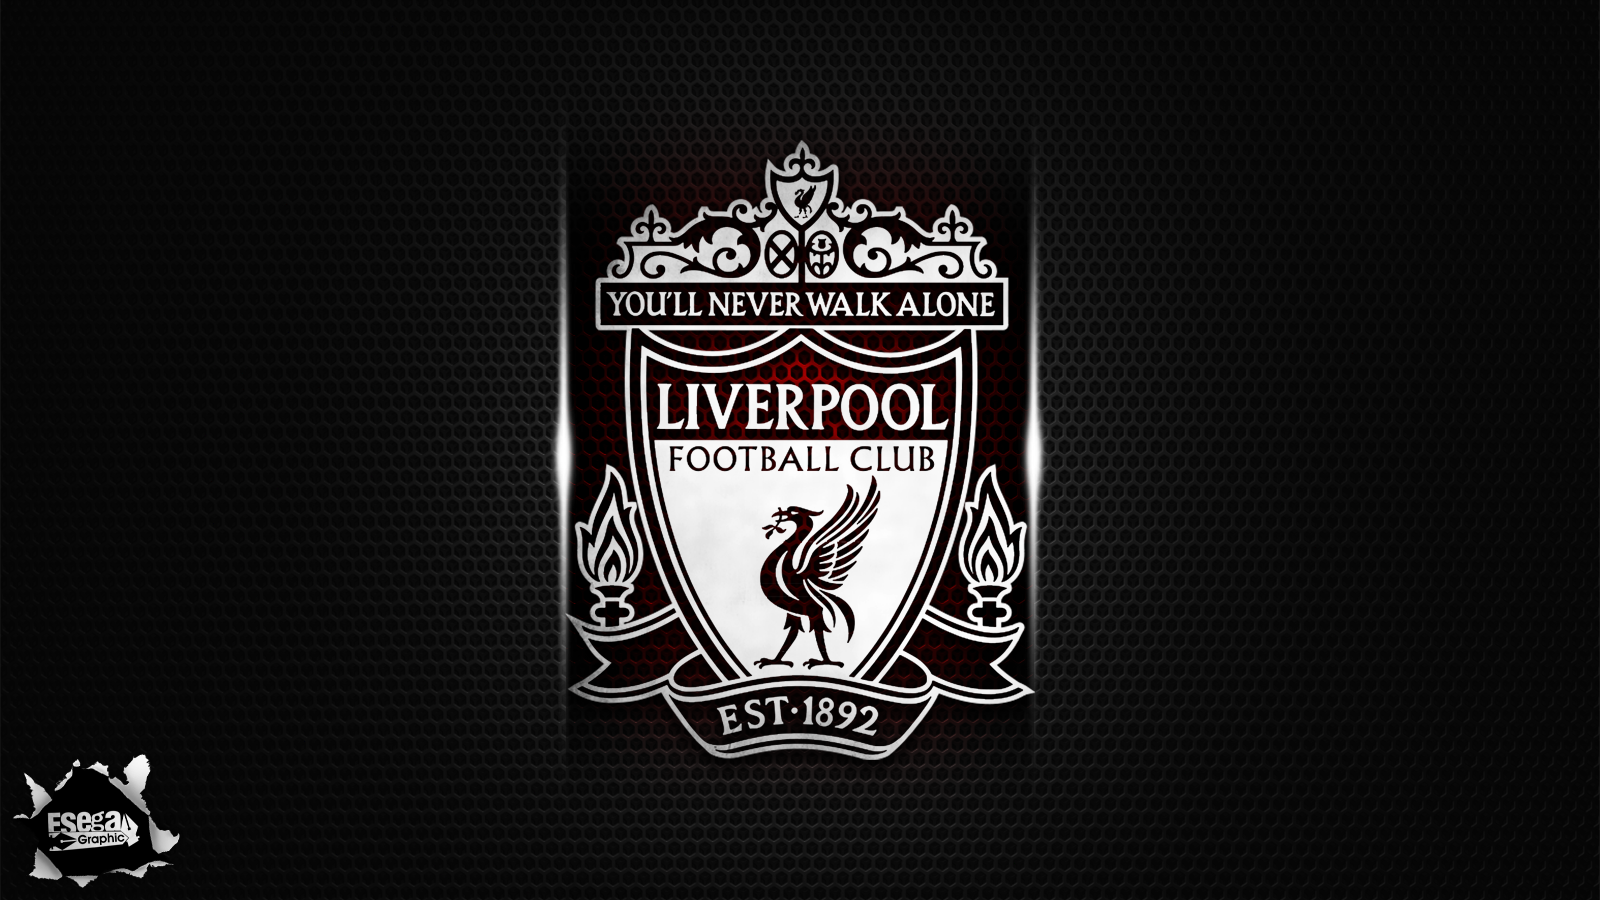 Liverpool Fc Wallpapers | Top 65 Liverpool Fc Wallpapers